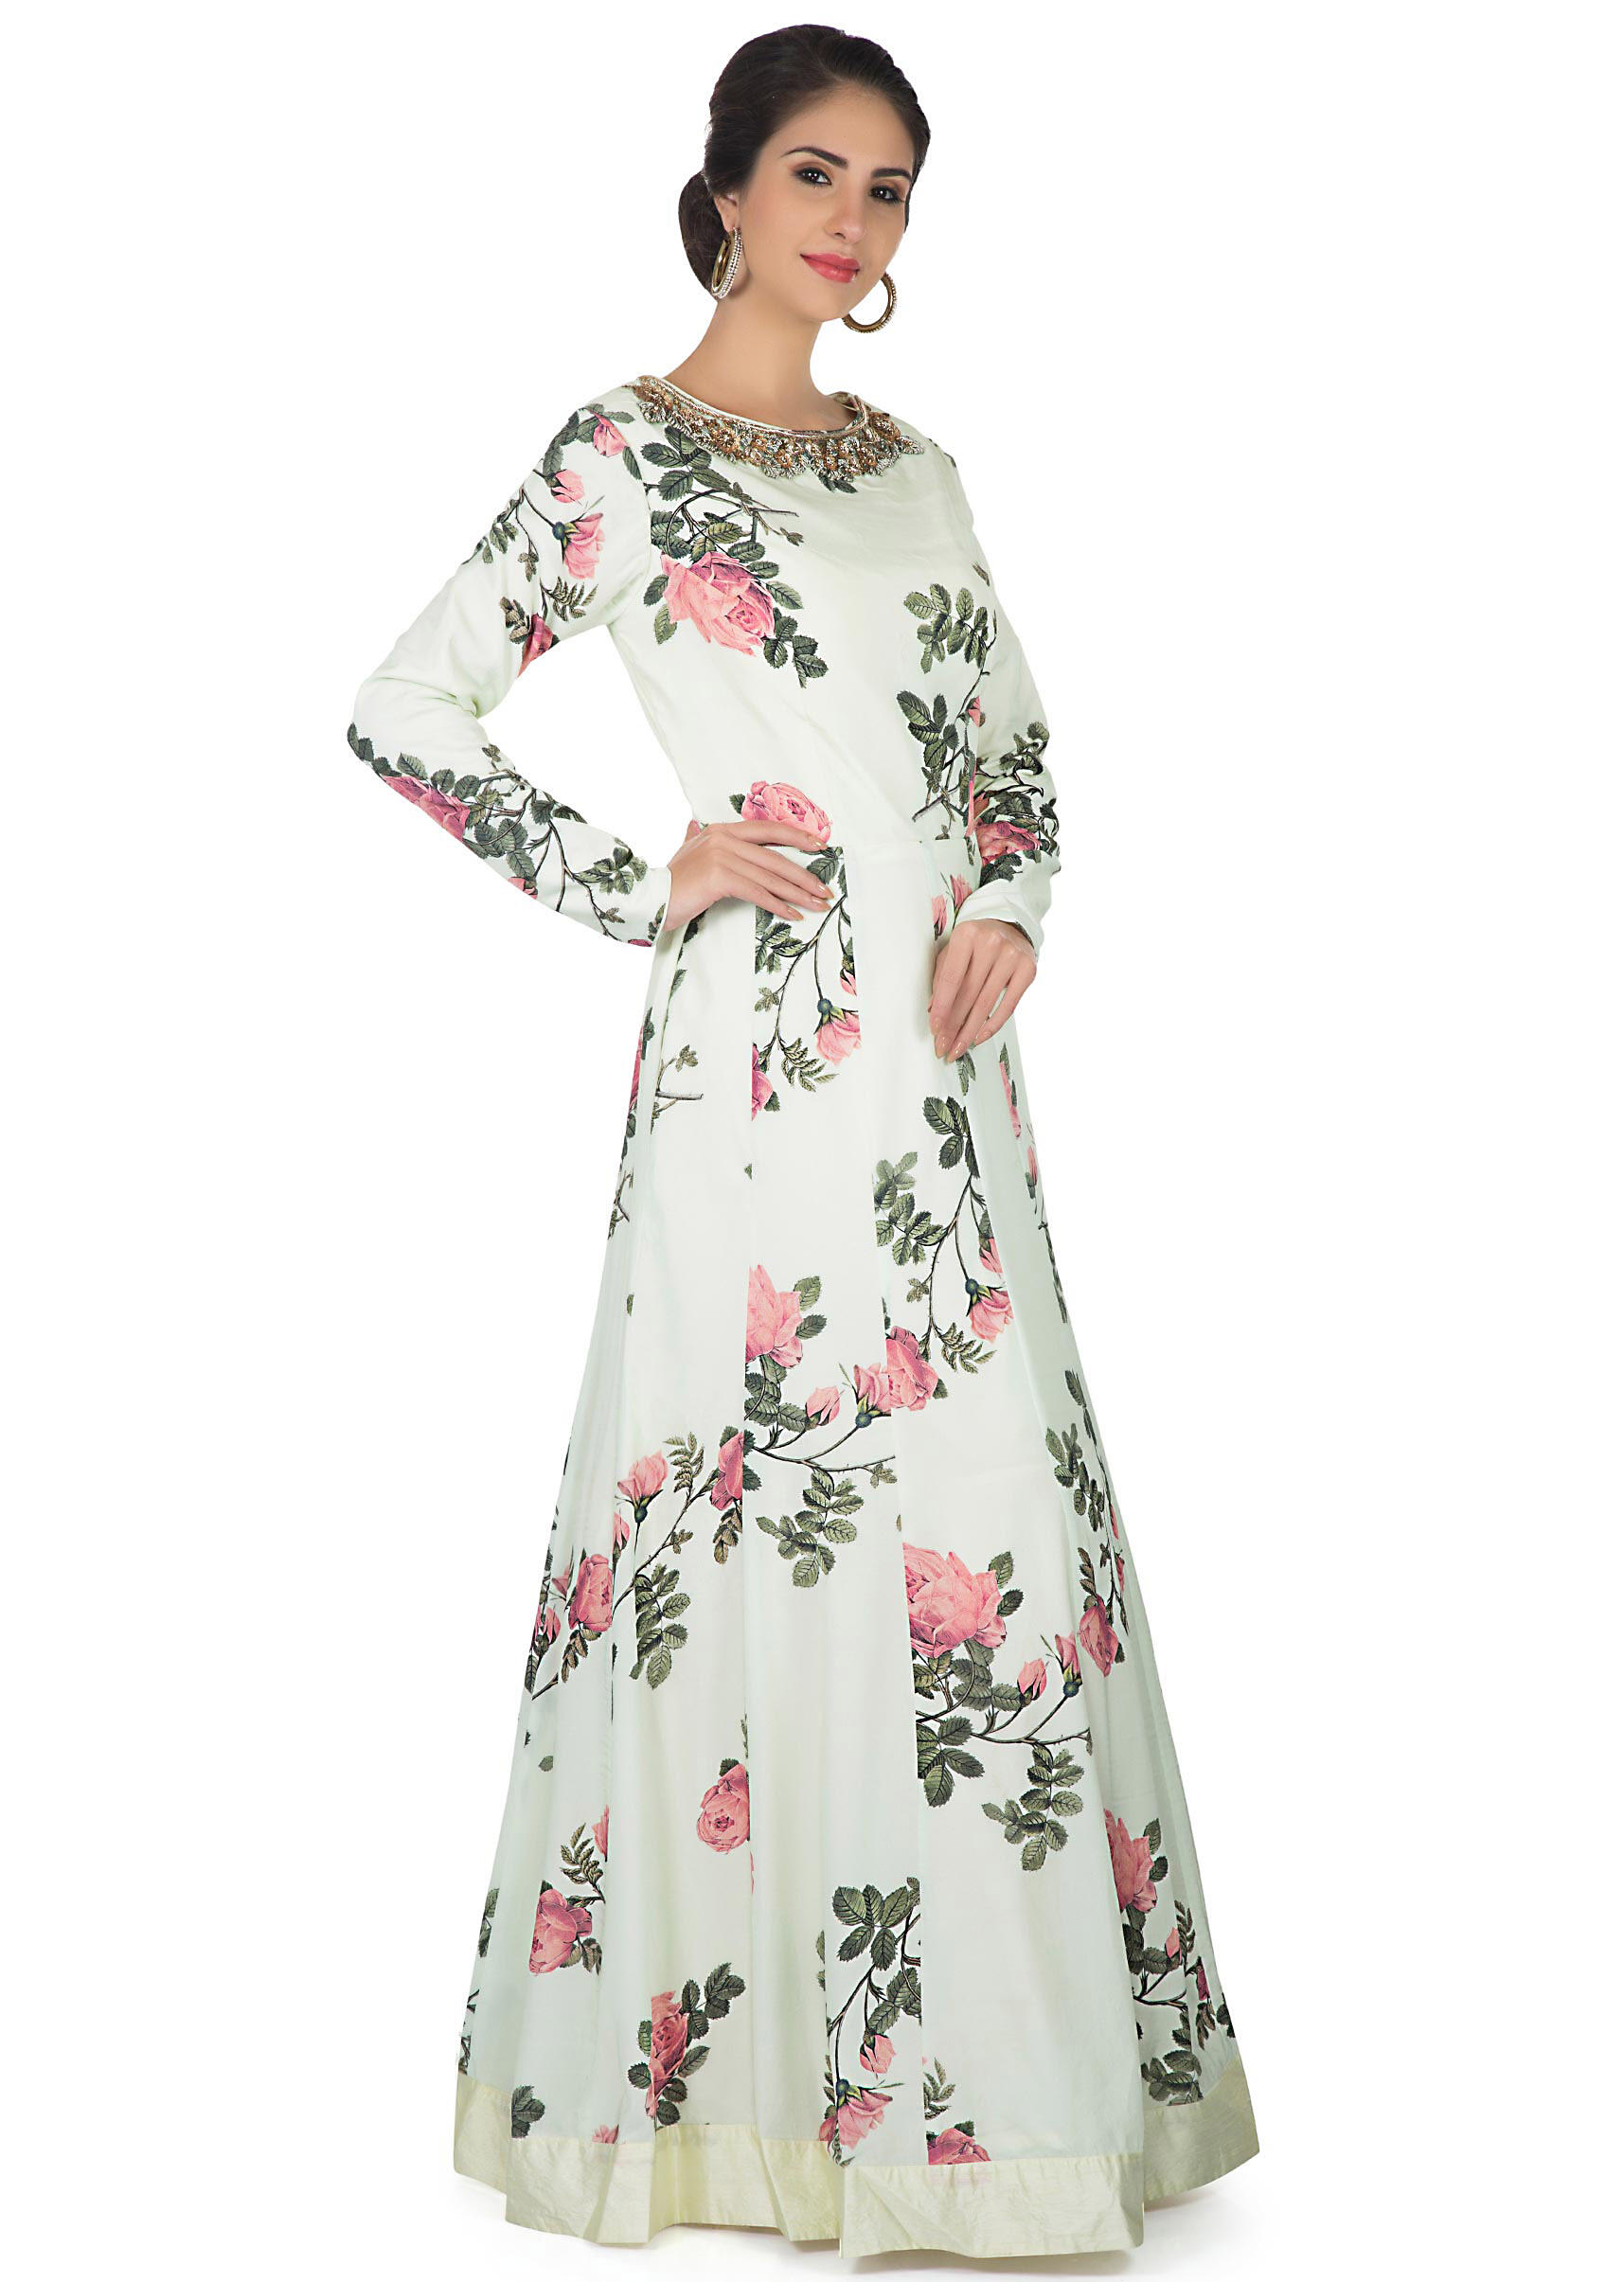 5c14fdfdcd Nile green anarkali gown embellished in floral print and embroidered  neckline only on Kalki